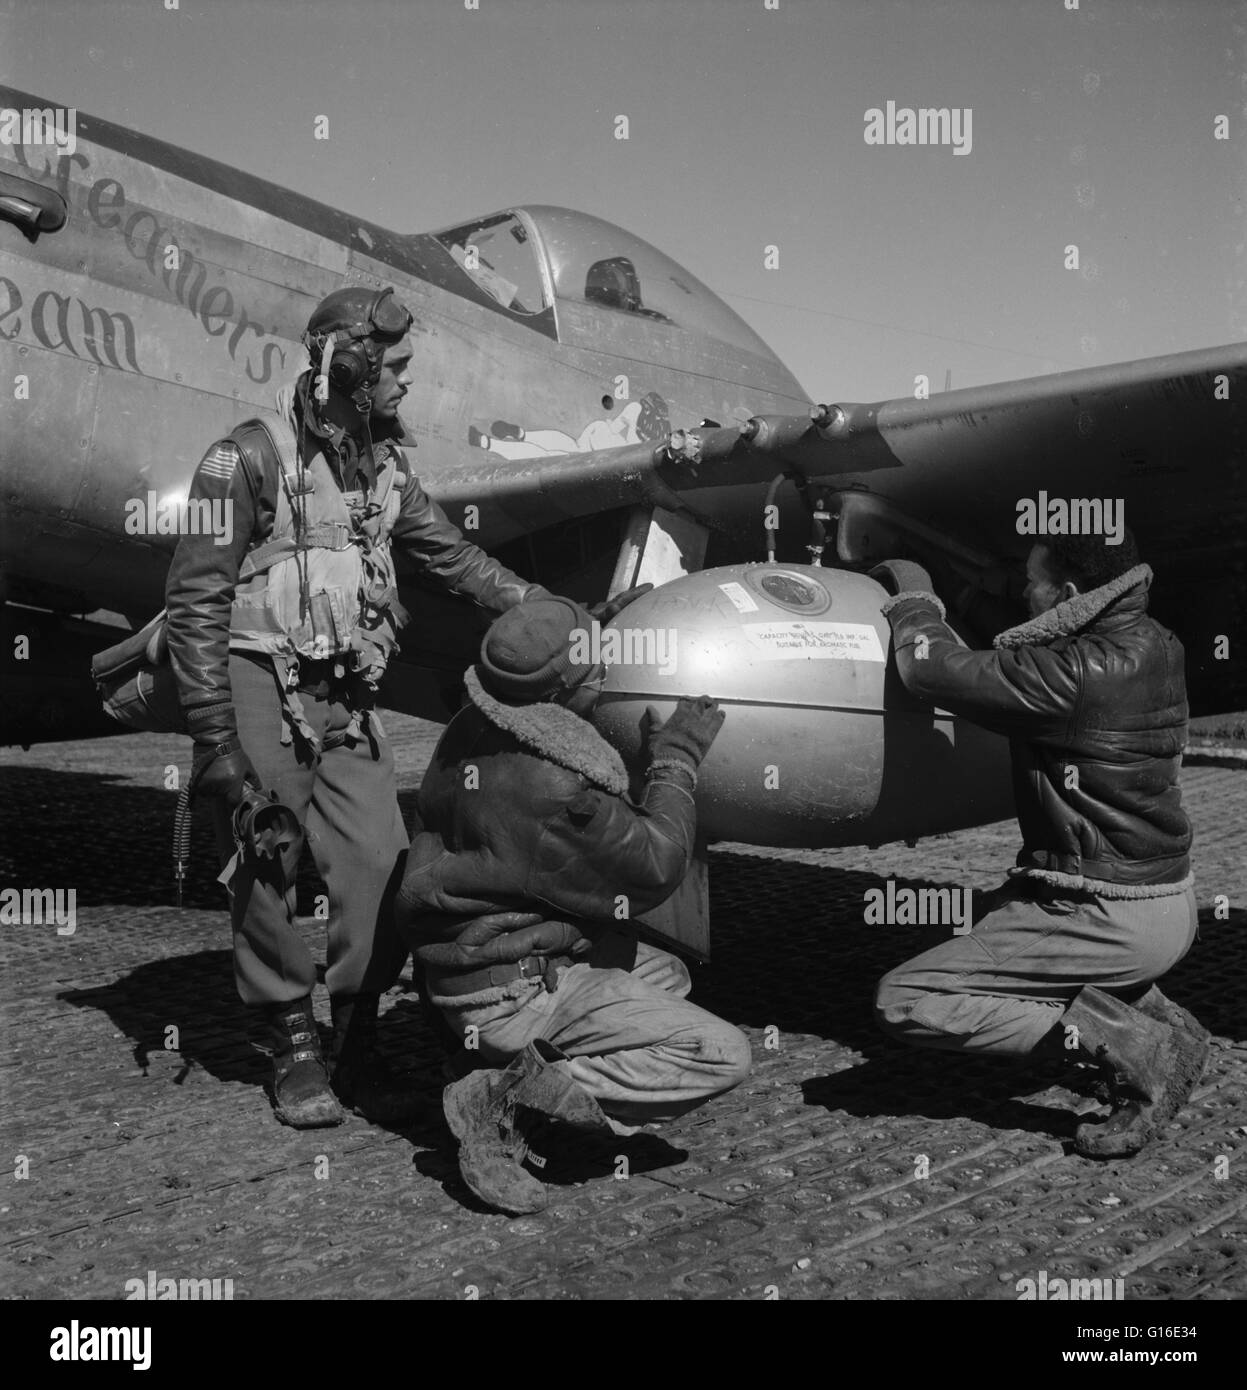 Entitled: 'Gleed and two unidentified Tuskegee airmen, Ramitelli, Italy' shows Tuskegee airman Edward C. - Stock Image